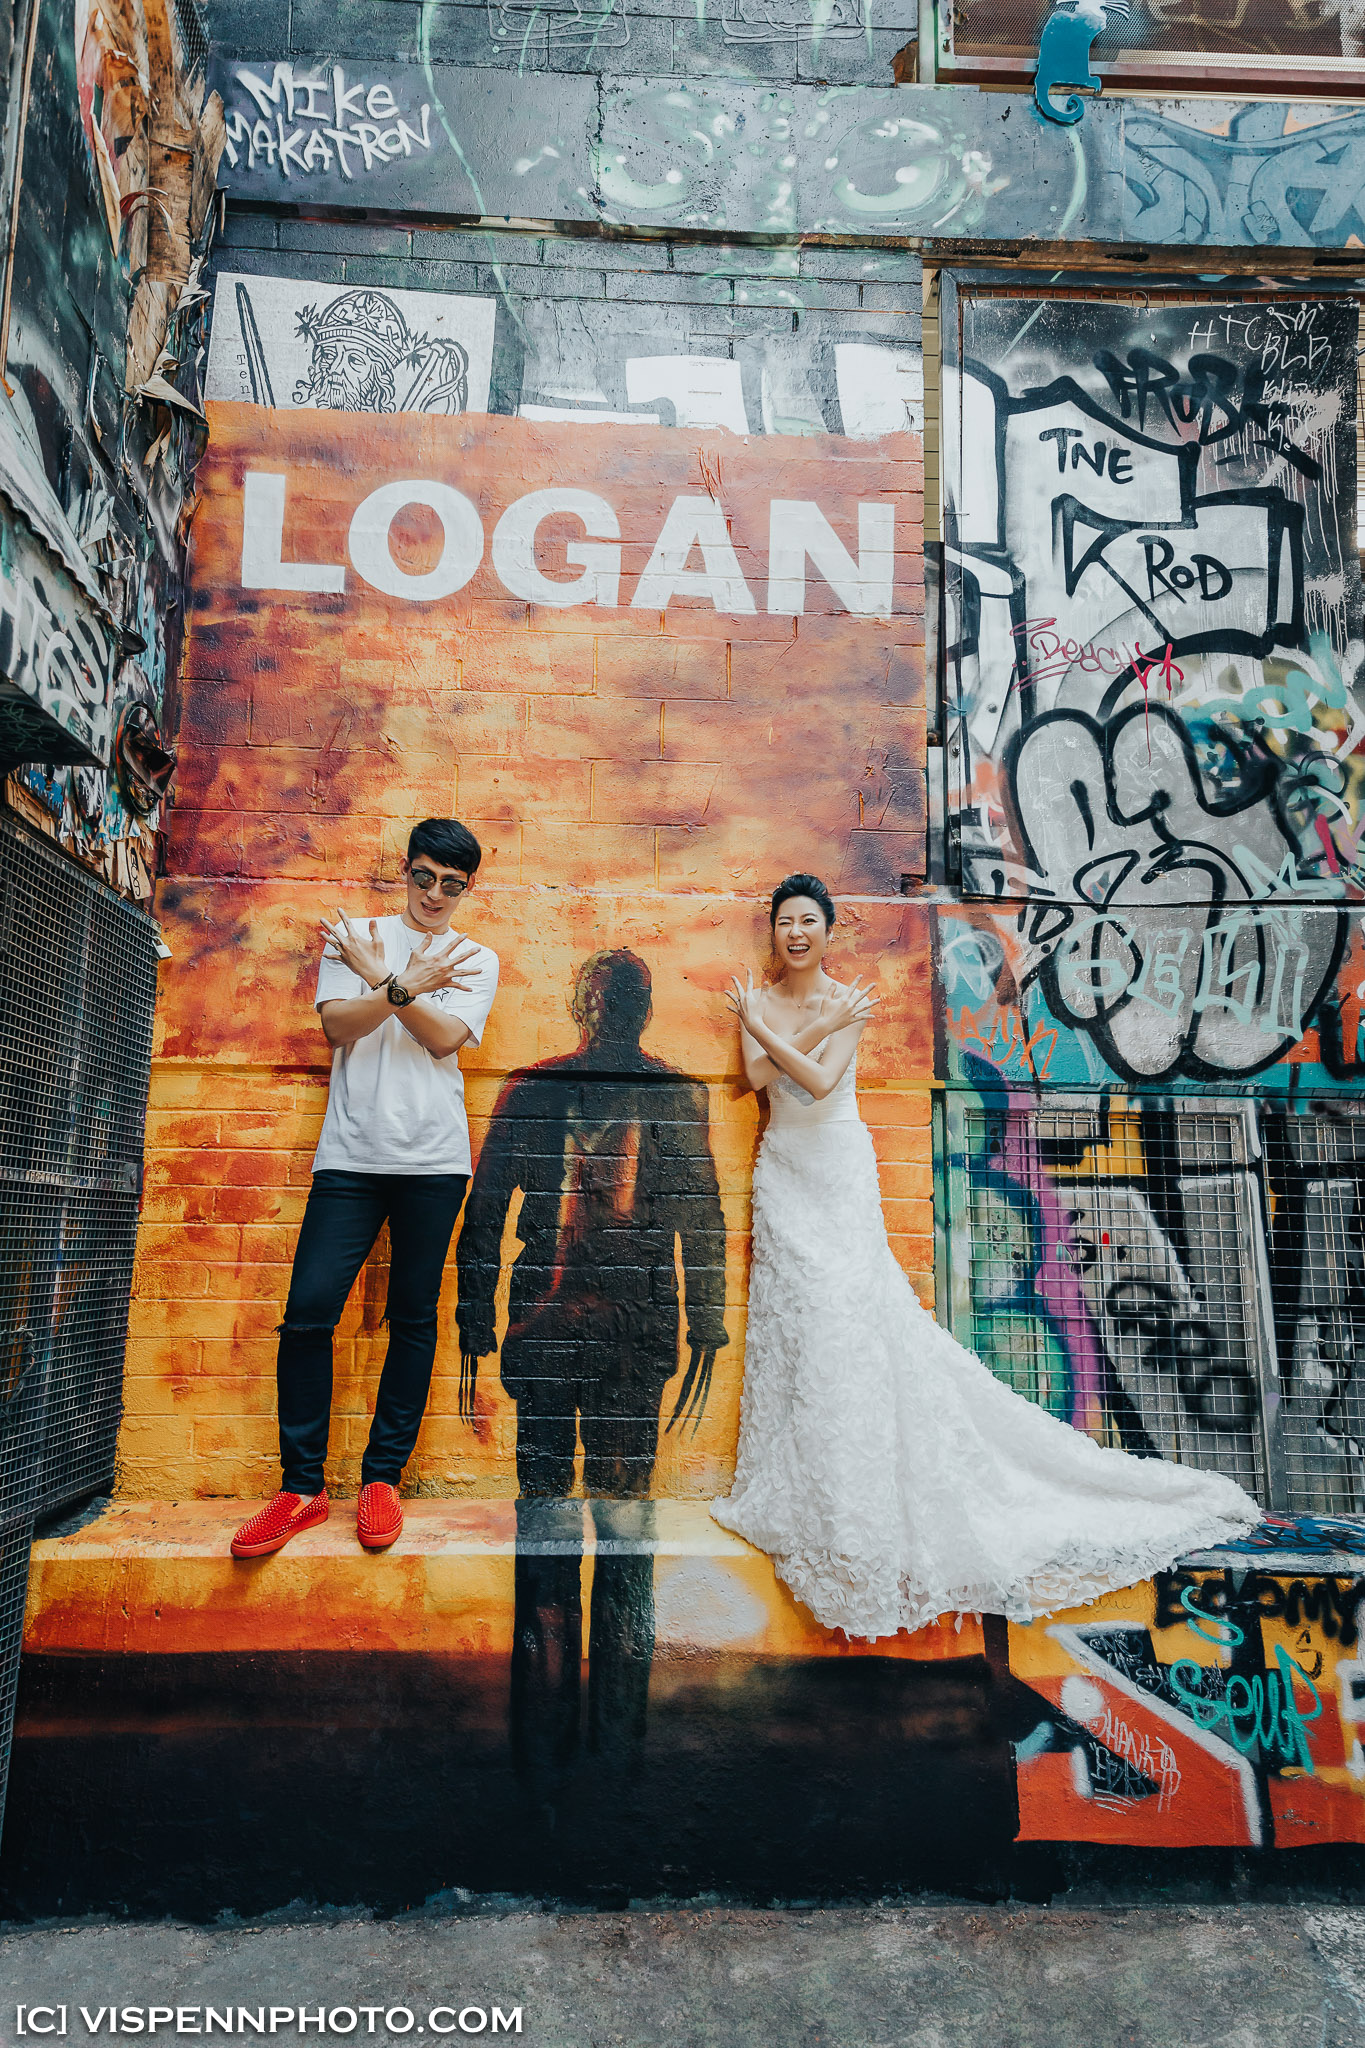 PRE WEDDING Photography Melbourne 5D4 2587